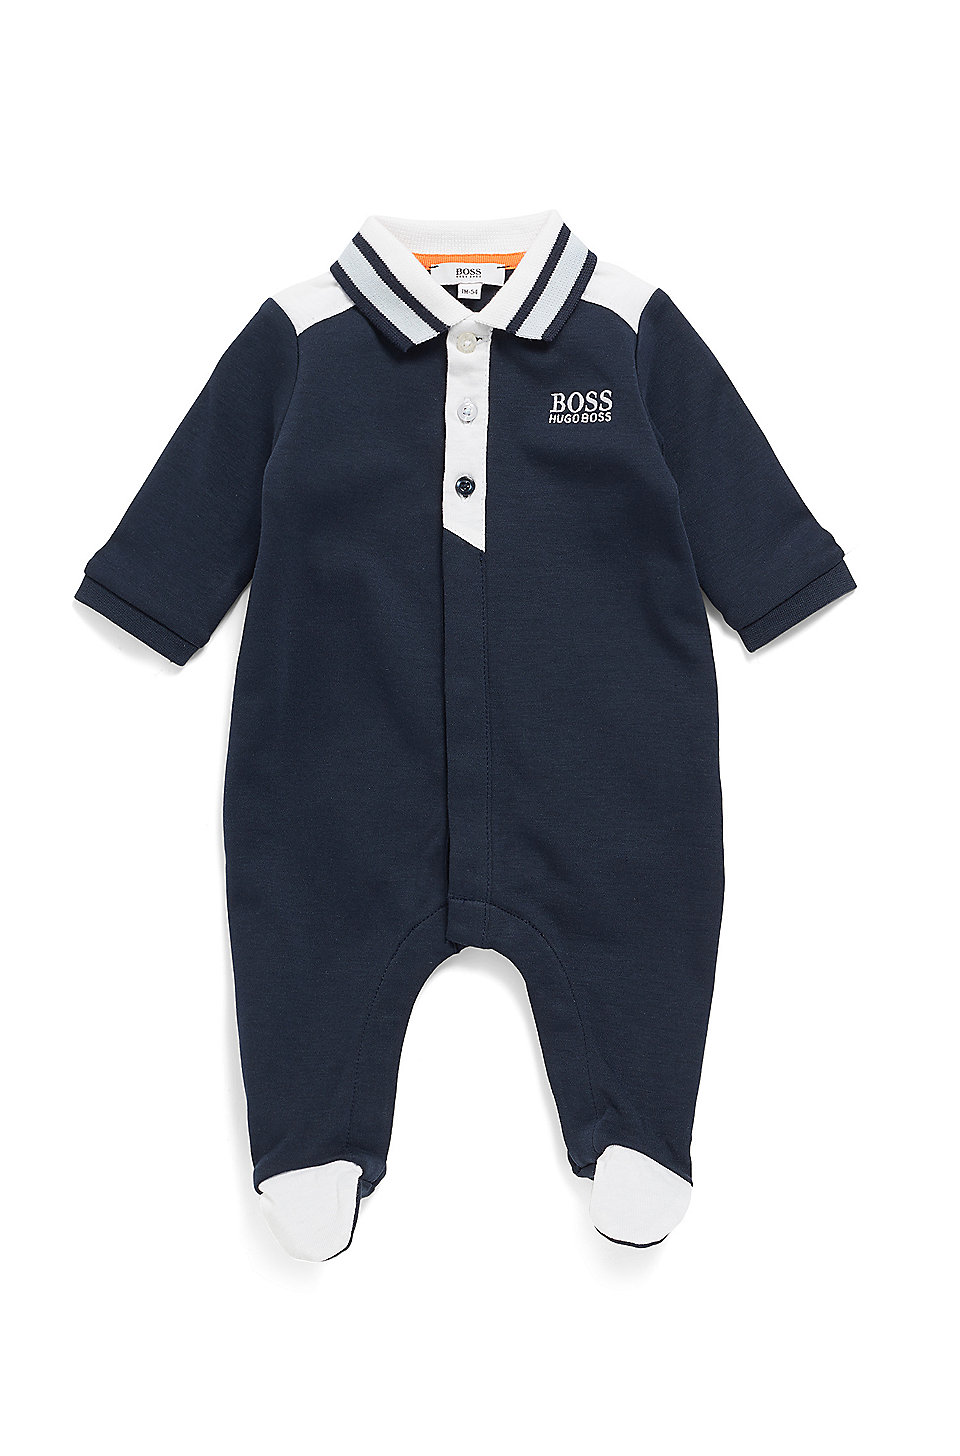 beste Angebote für Veröffentlichungsdatum: Verkauf Einzelhändler BOSS - Baby boy bodysuit in interlock cotton with polo collar